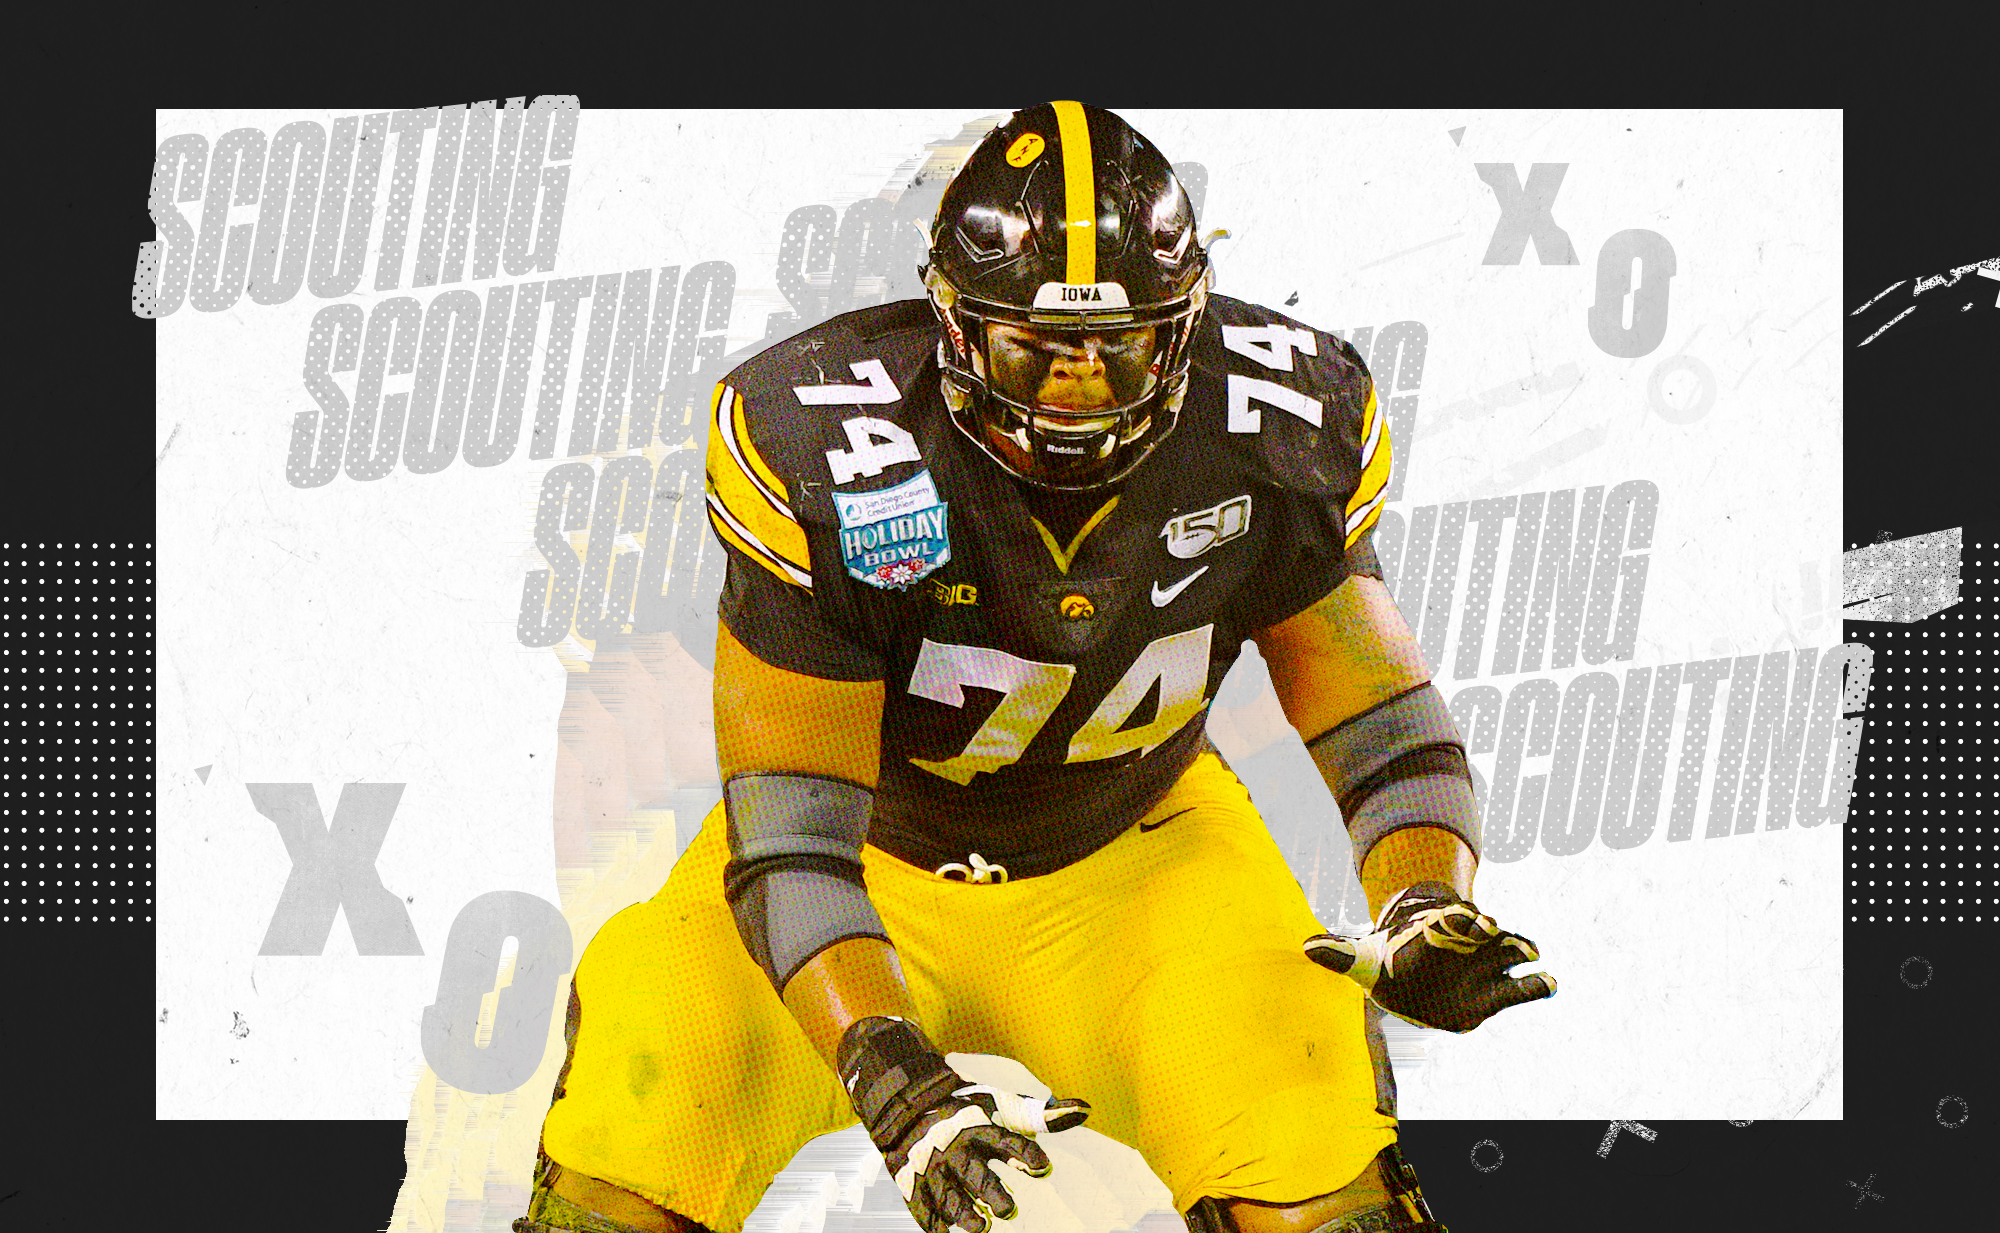 """An illustration of NFL OT prospect Tristan Wirfs in a stance at Iowa, superimposed on a black and white background with """"SCOUTING"""" and """"X""""s and """"O""""s in gray lettering"""